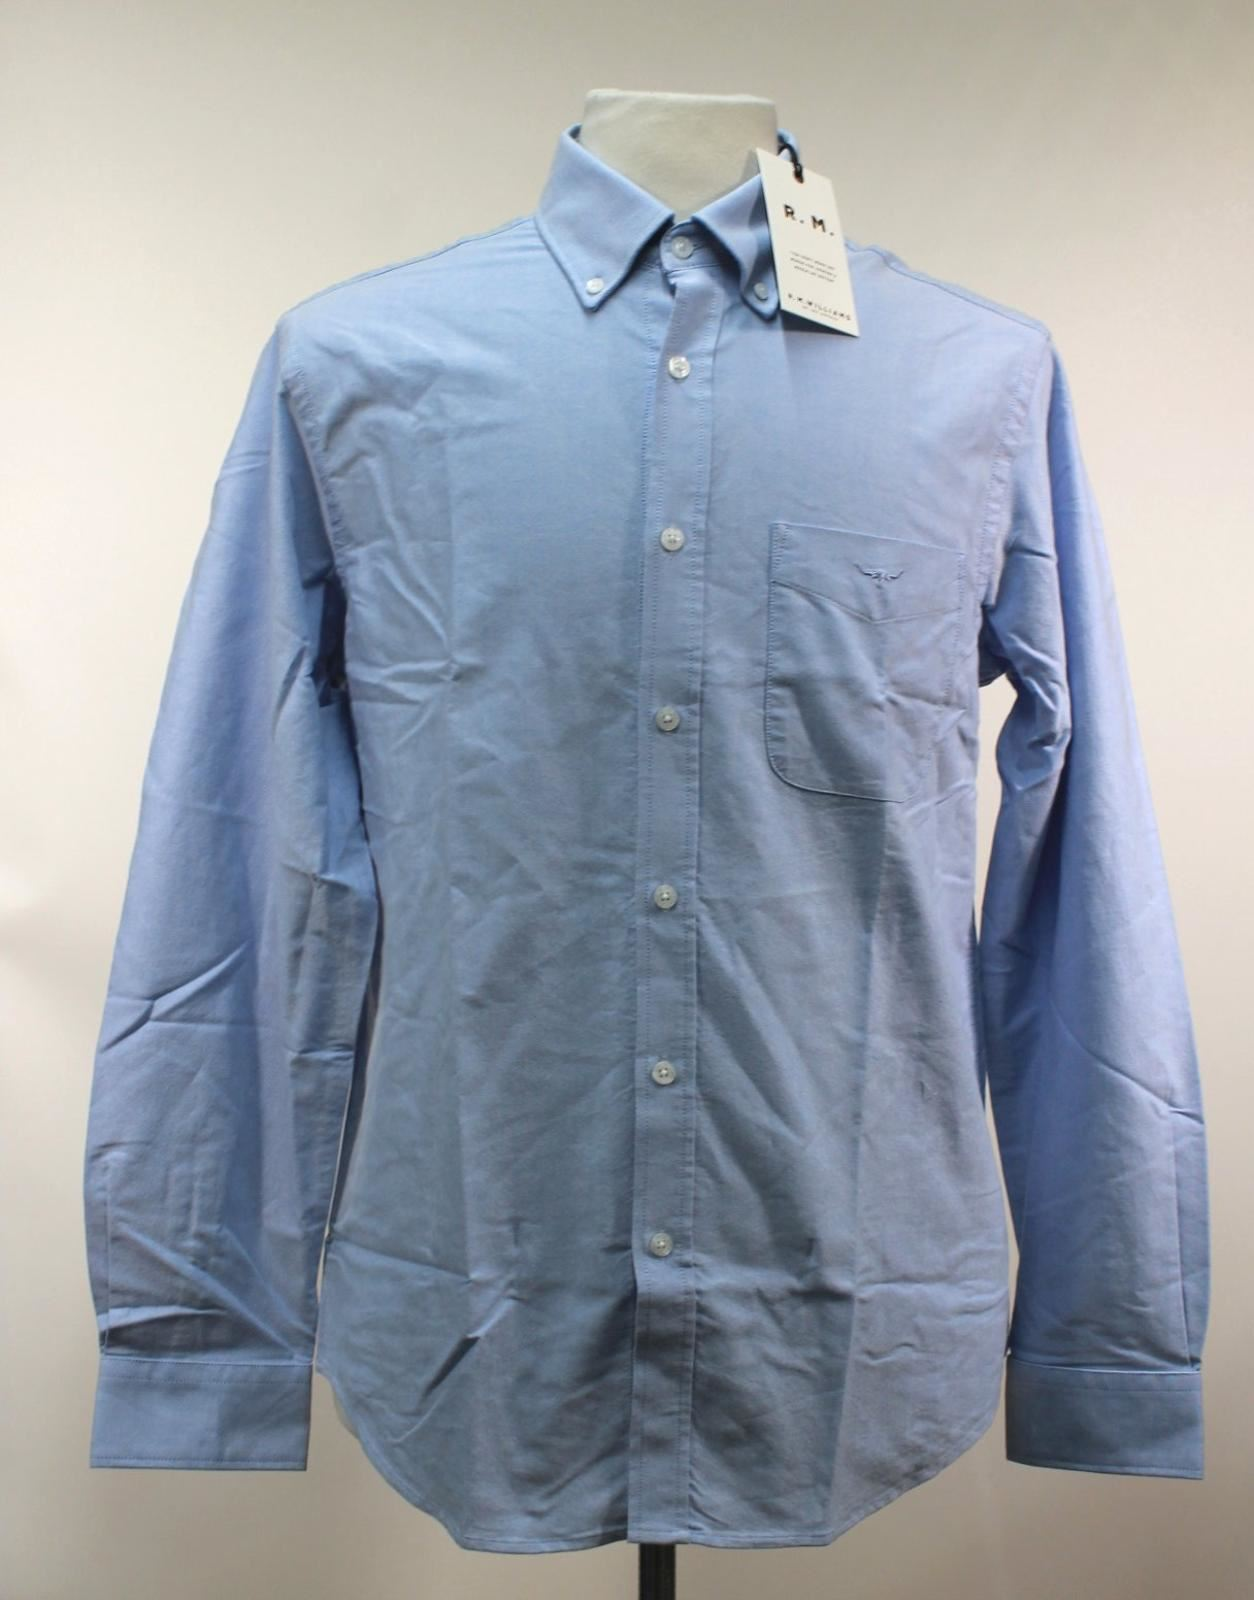 BNWT R. M. WILLIAMS Men's Sky bluee Cotton Collared Collins Casual Shirt Size M